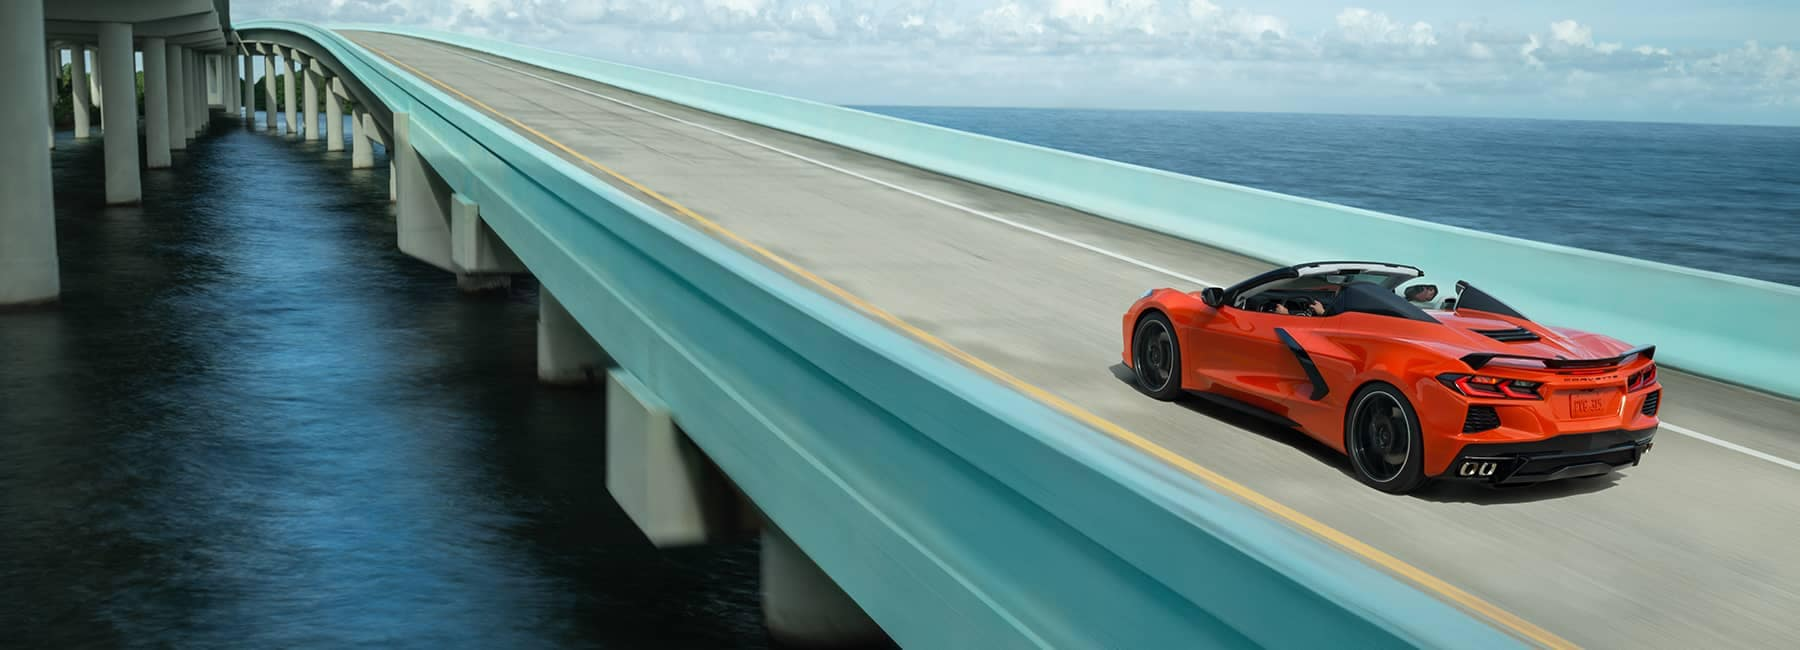 Red 2020 Chevrolet Corvette Stingray Convertible Driving on an Ocean Highway_mobile